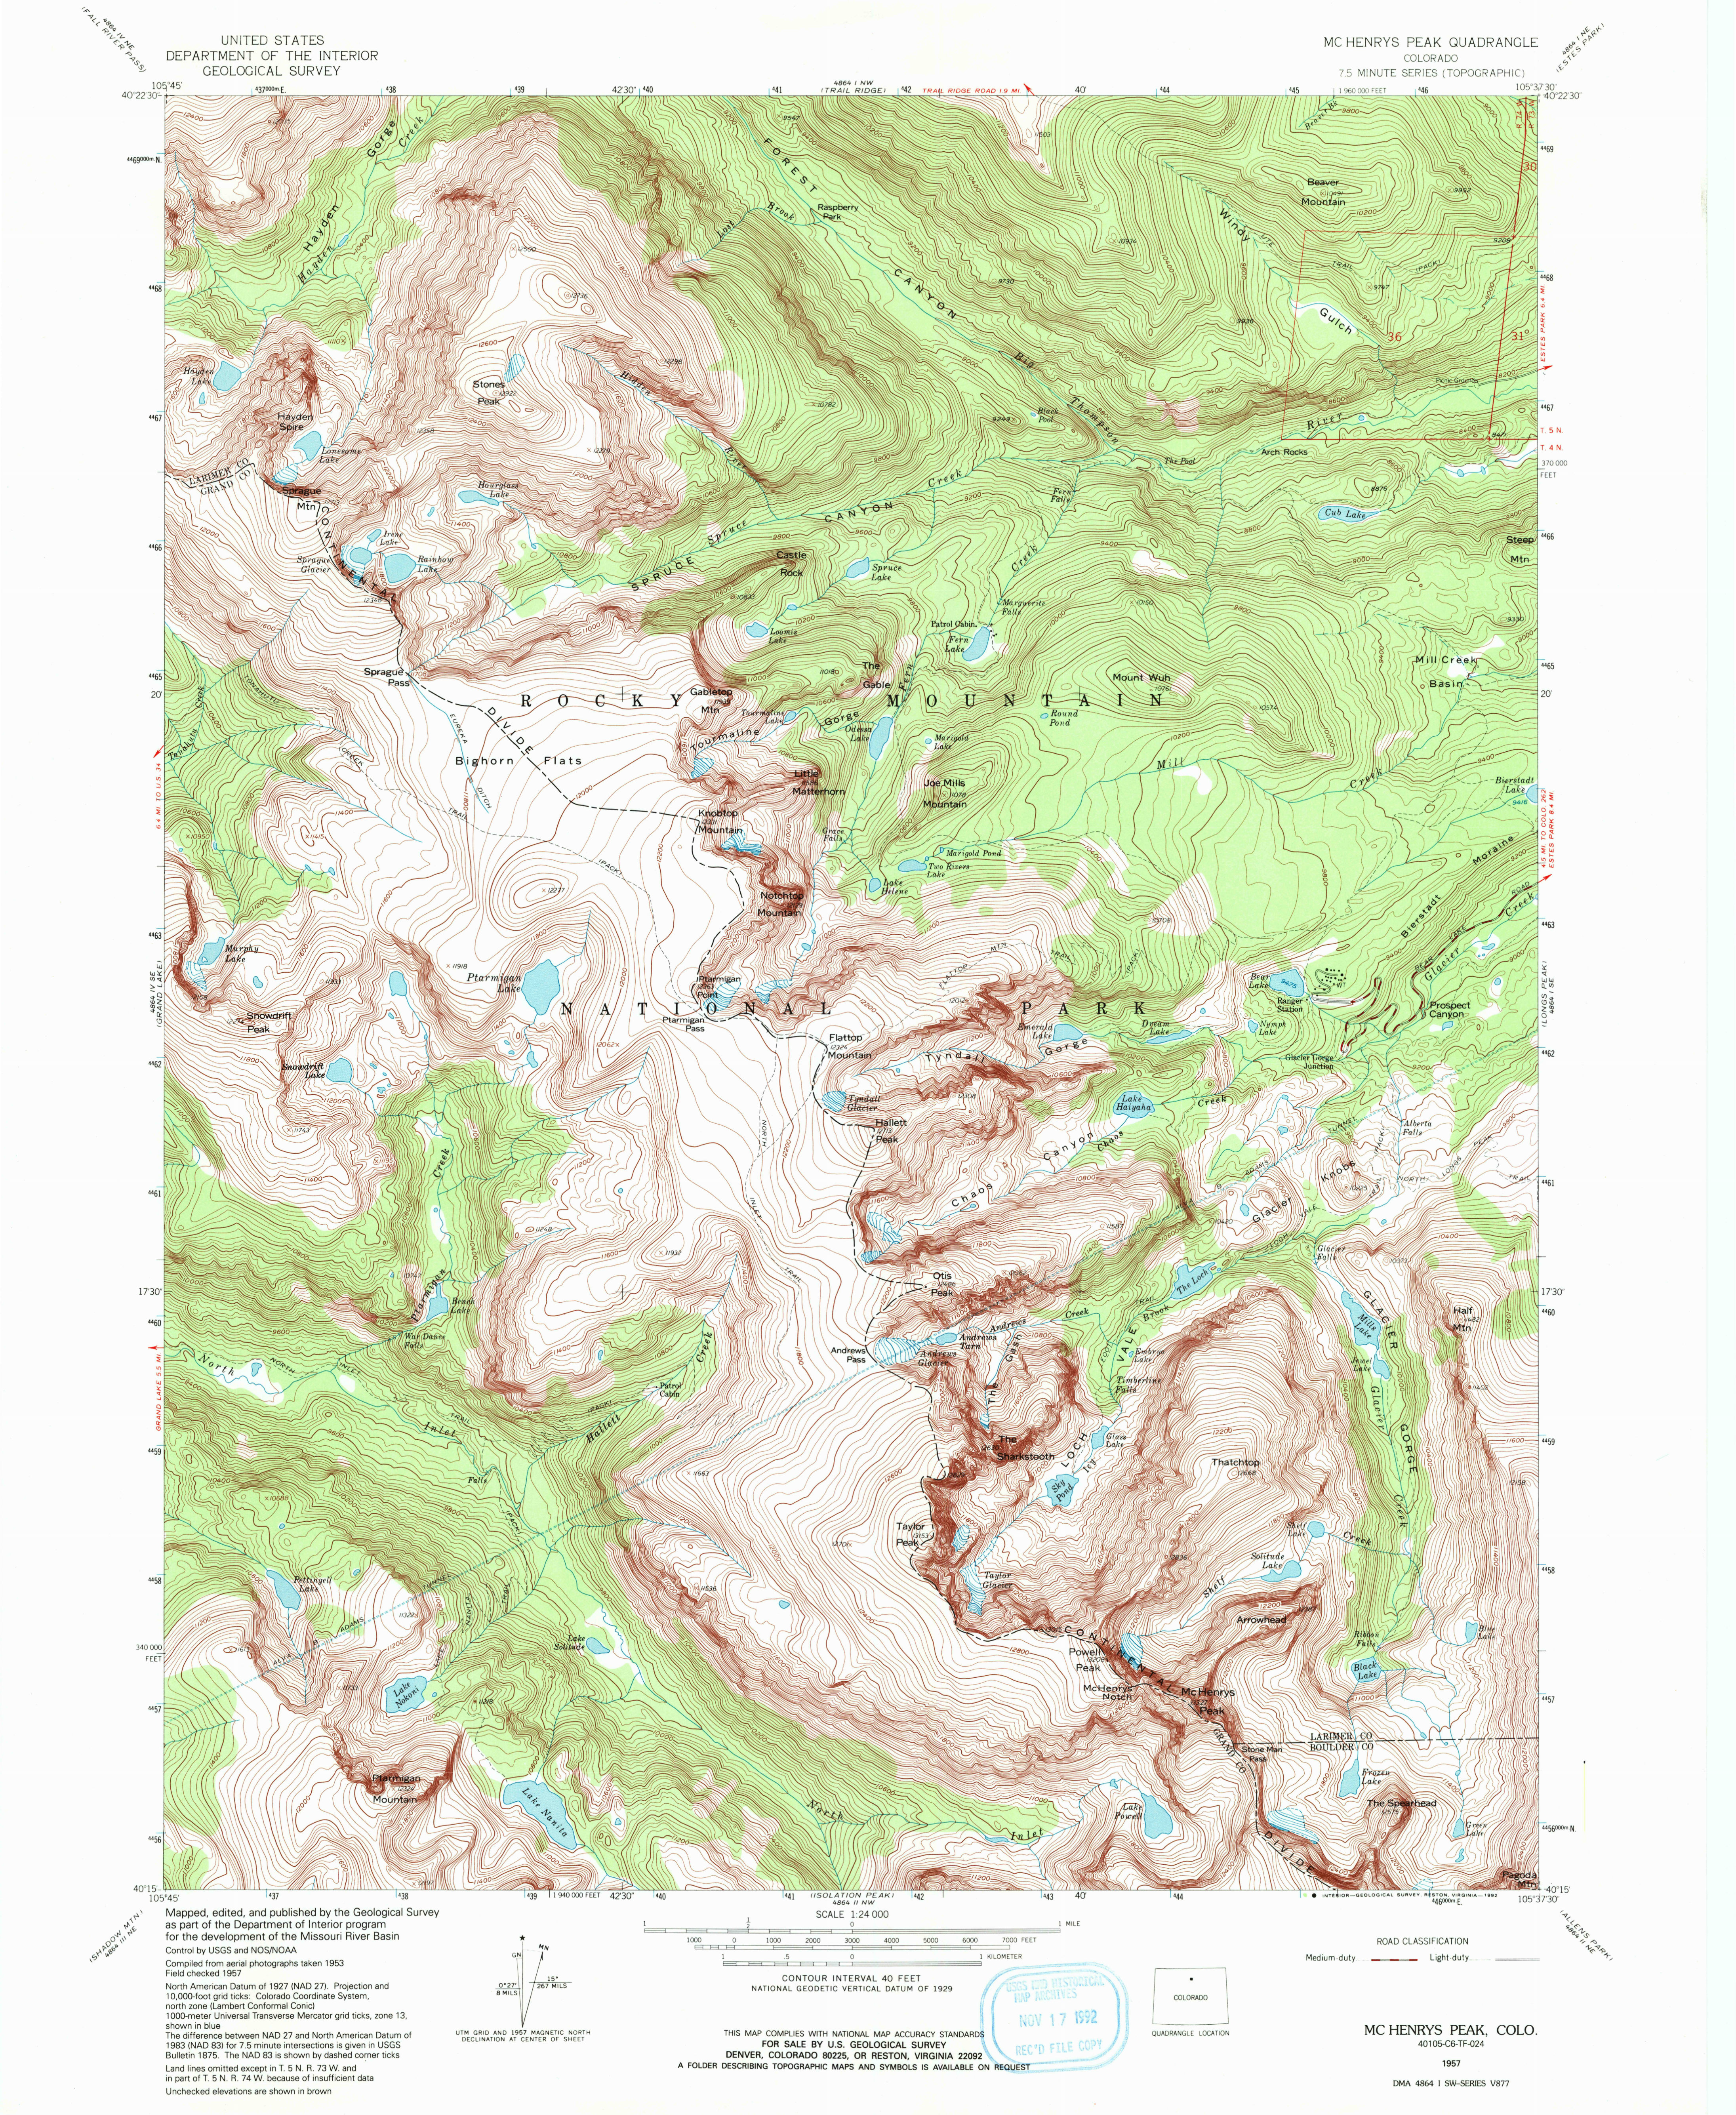 US Topo Map Us Geological Survey Tusstk Usgs Quad Maps Usgs Quad - Us maps for sale